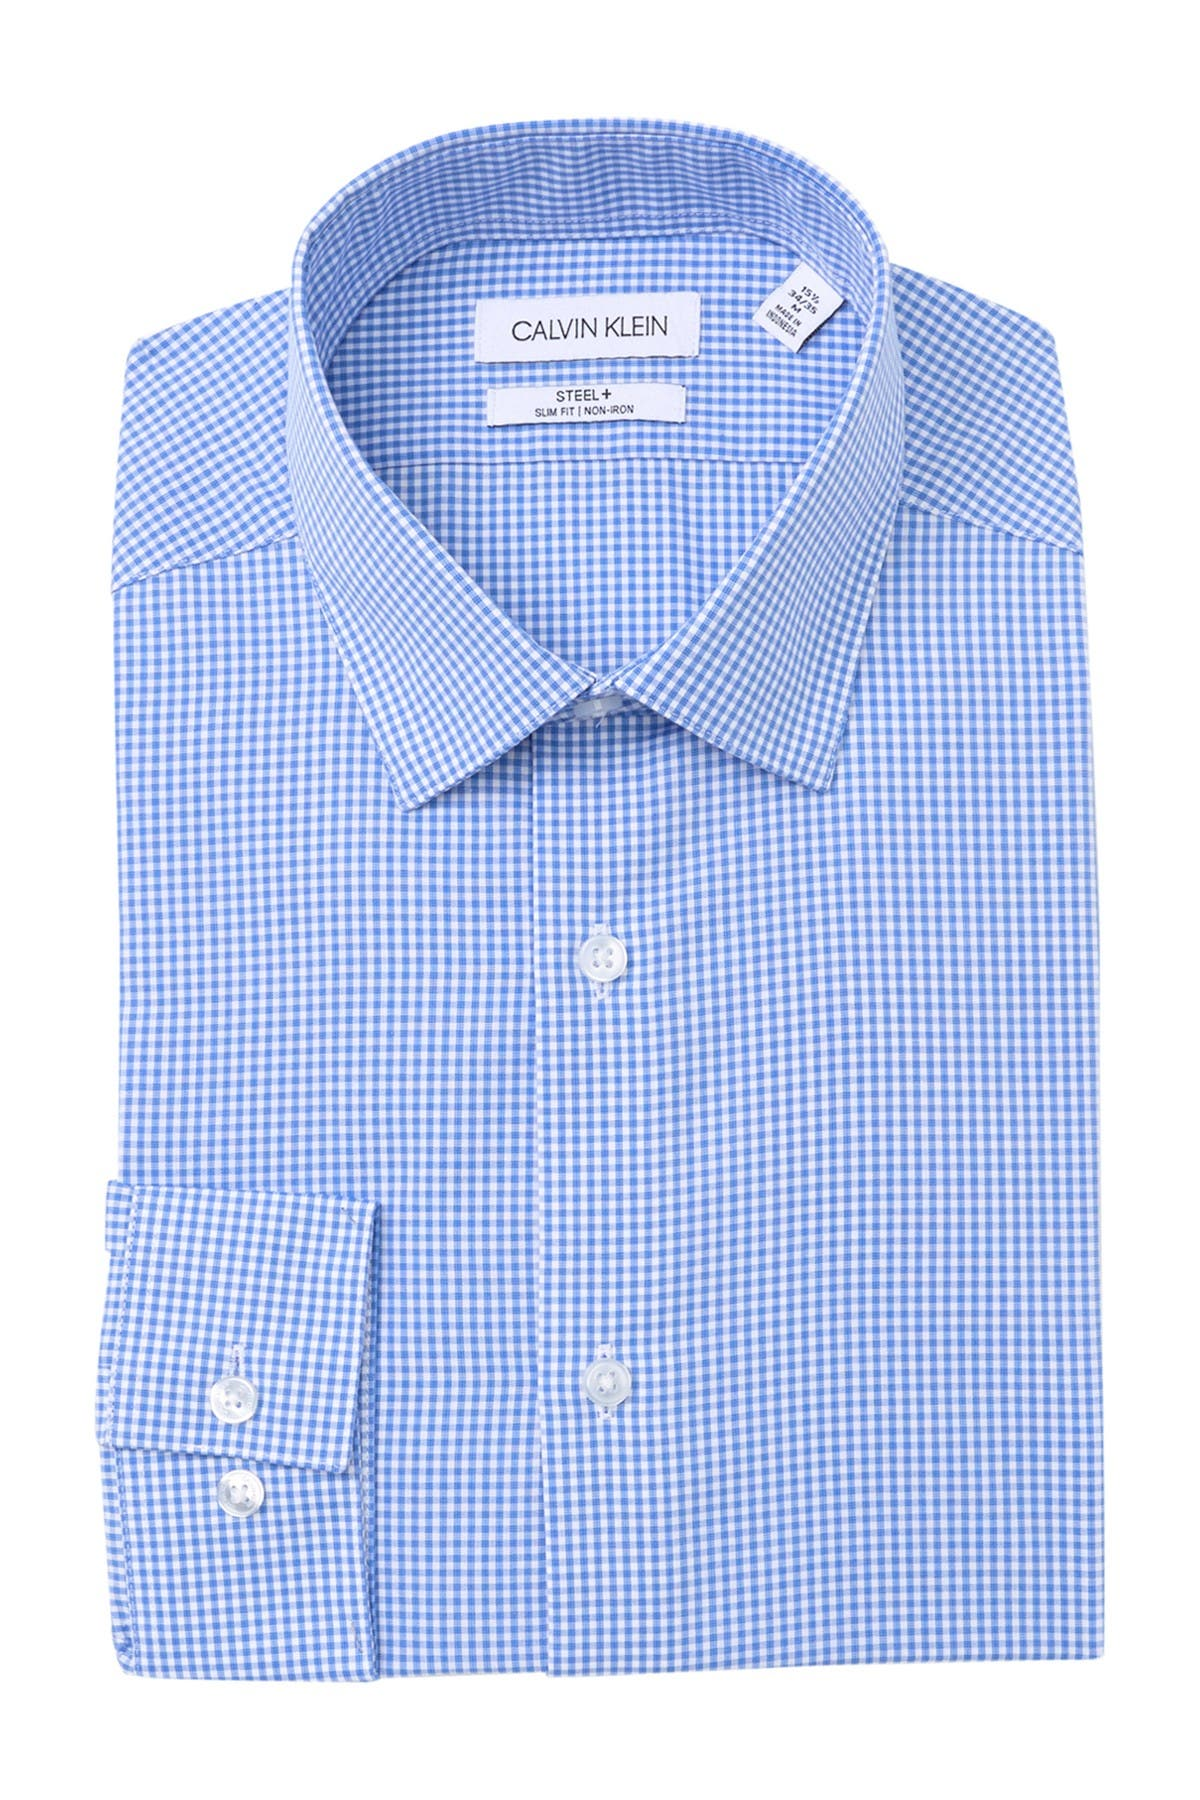 Image of Calvin Klein Steel+ Slim Fit Non-Iron Dress Shirt